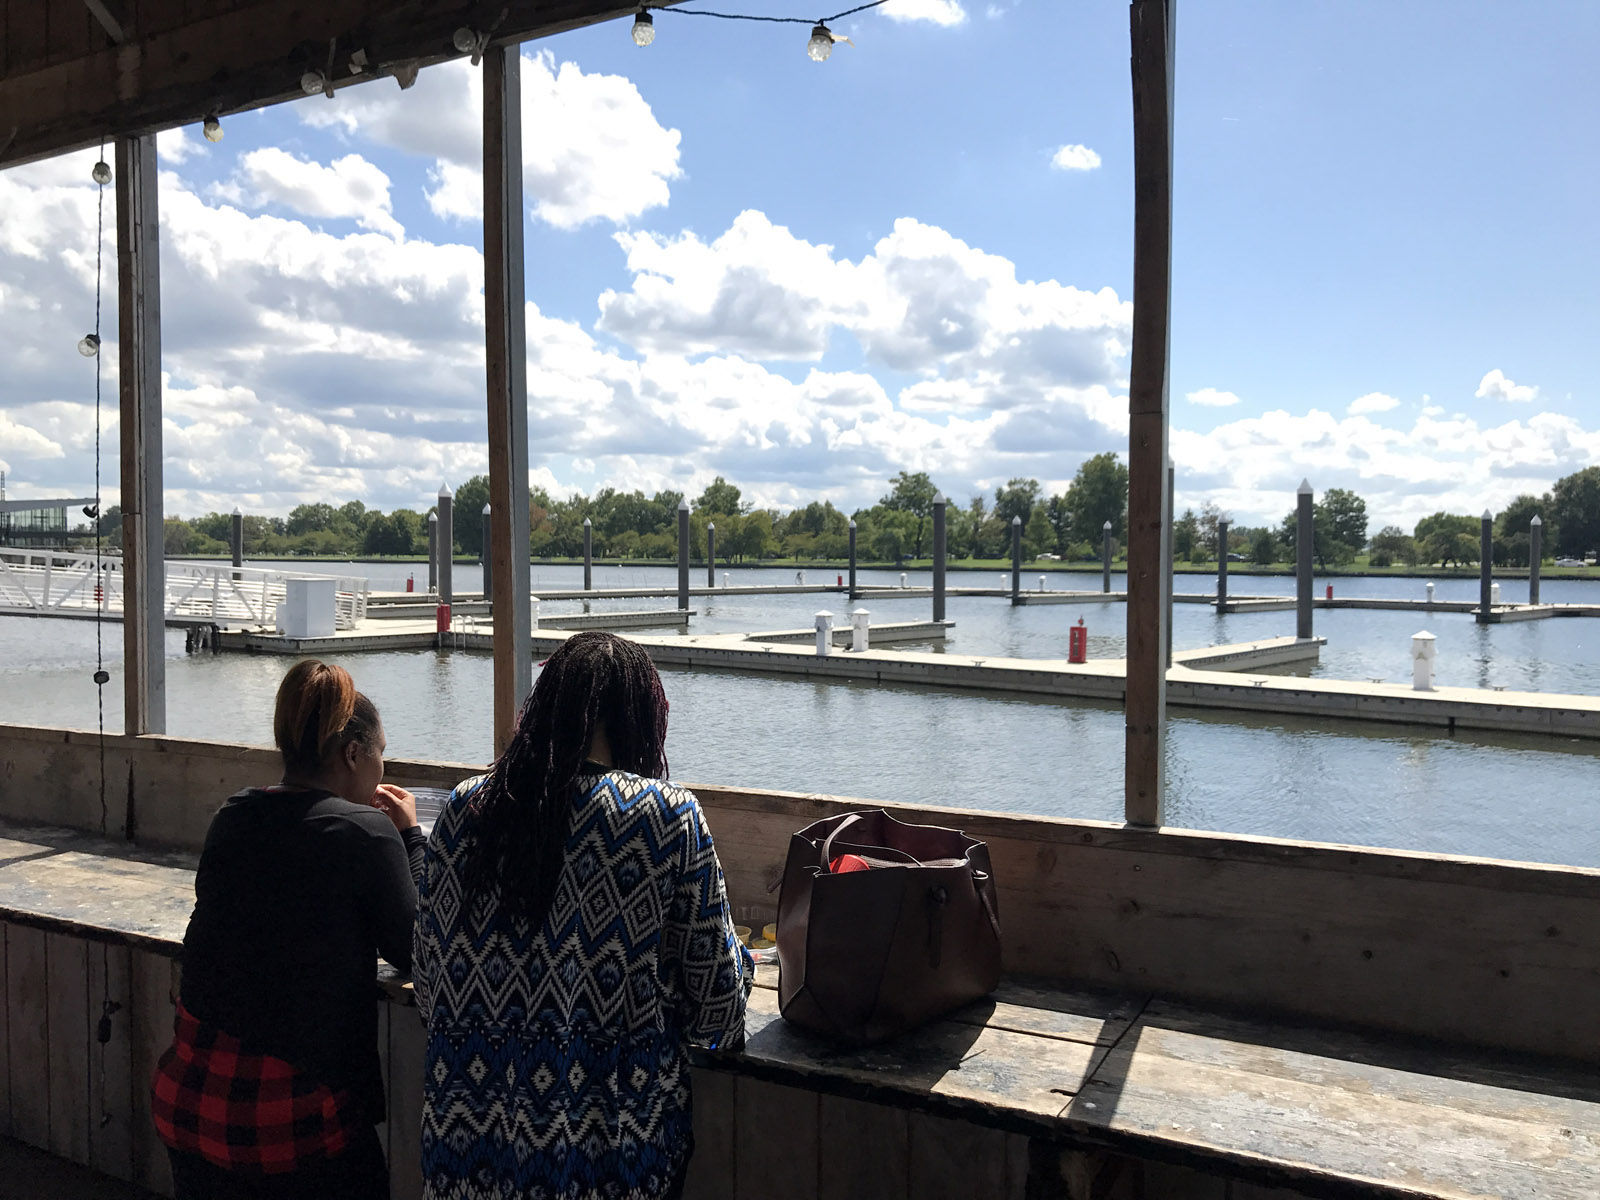 From the eating area set aside for customers of Captain White's, you can see the marina slips available for recreational boaters near the Maine Avenue Fish Market in this Sept. 7, 2017 photo. Improvements to the market are expected to wrap up sometime next spring. (WTOP/Michelle Basch)